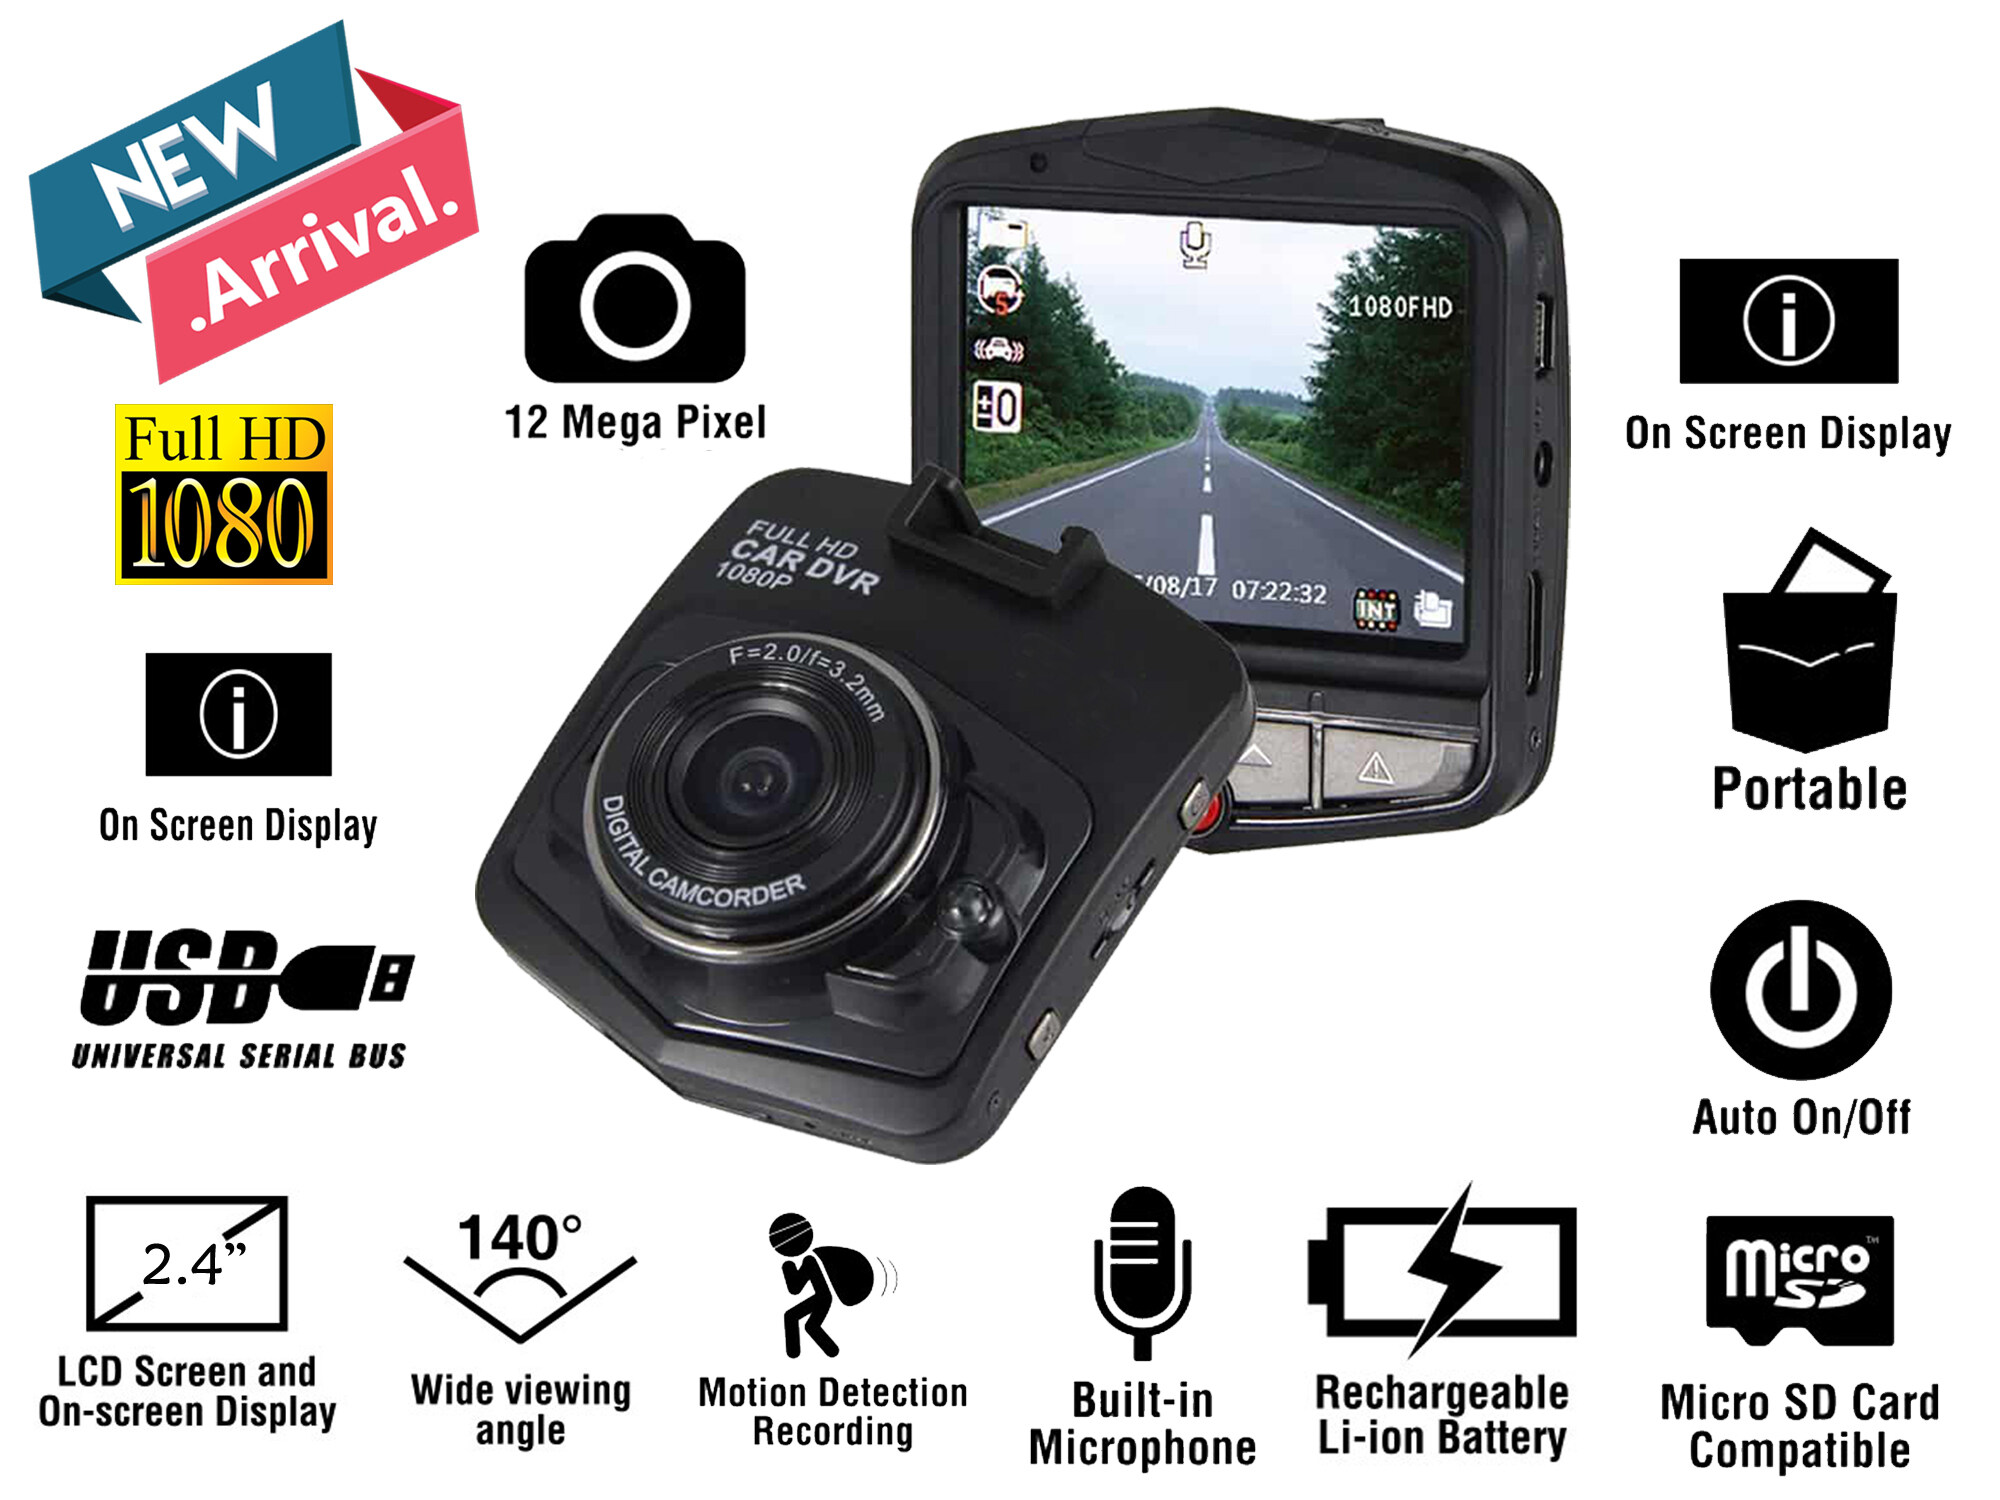 Vehicle Blackbox 2.4 LCD Car Camera Full HD 1080P FHD Dashcam DVR Black Box Dash Cam Video Recorder G-sensor Motion Detection Night Vision Loop Recording Function